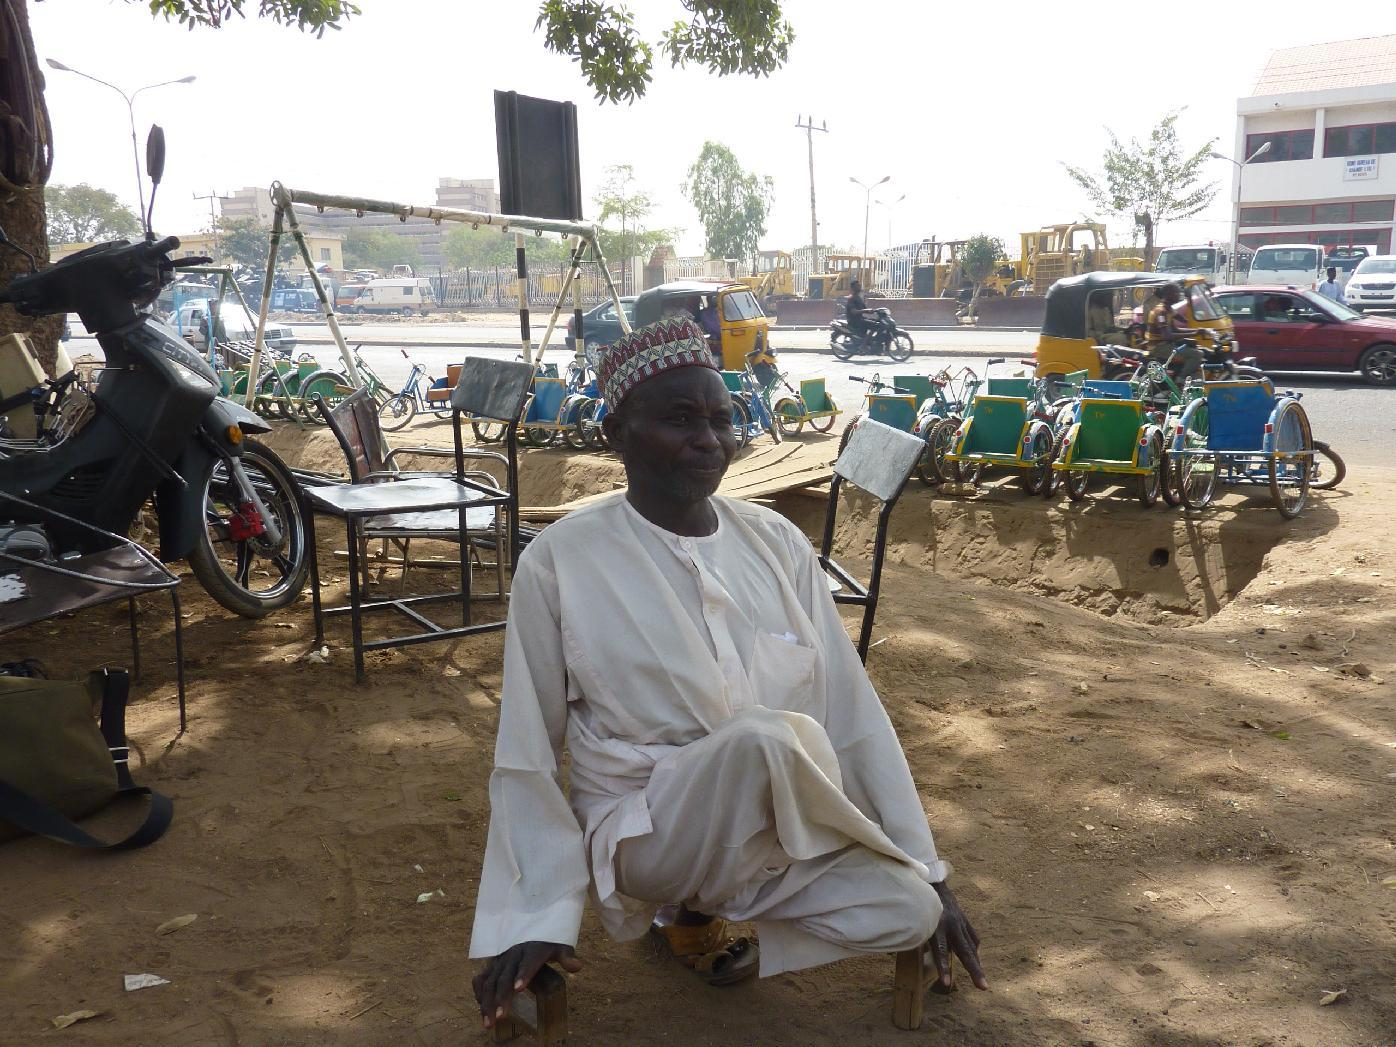 Chairman of the Kano state polio victims trust association Aminu Ahmed El Wada, pictured in Kano, on February 13, 2013 (AFP Photo/Ben Simon)